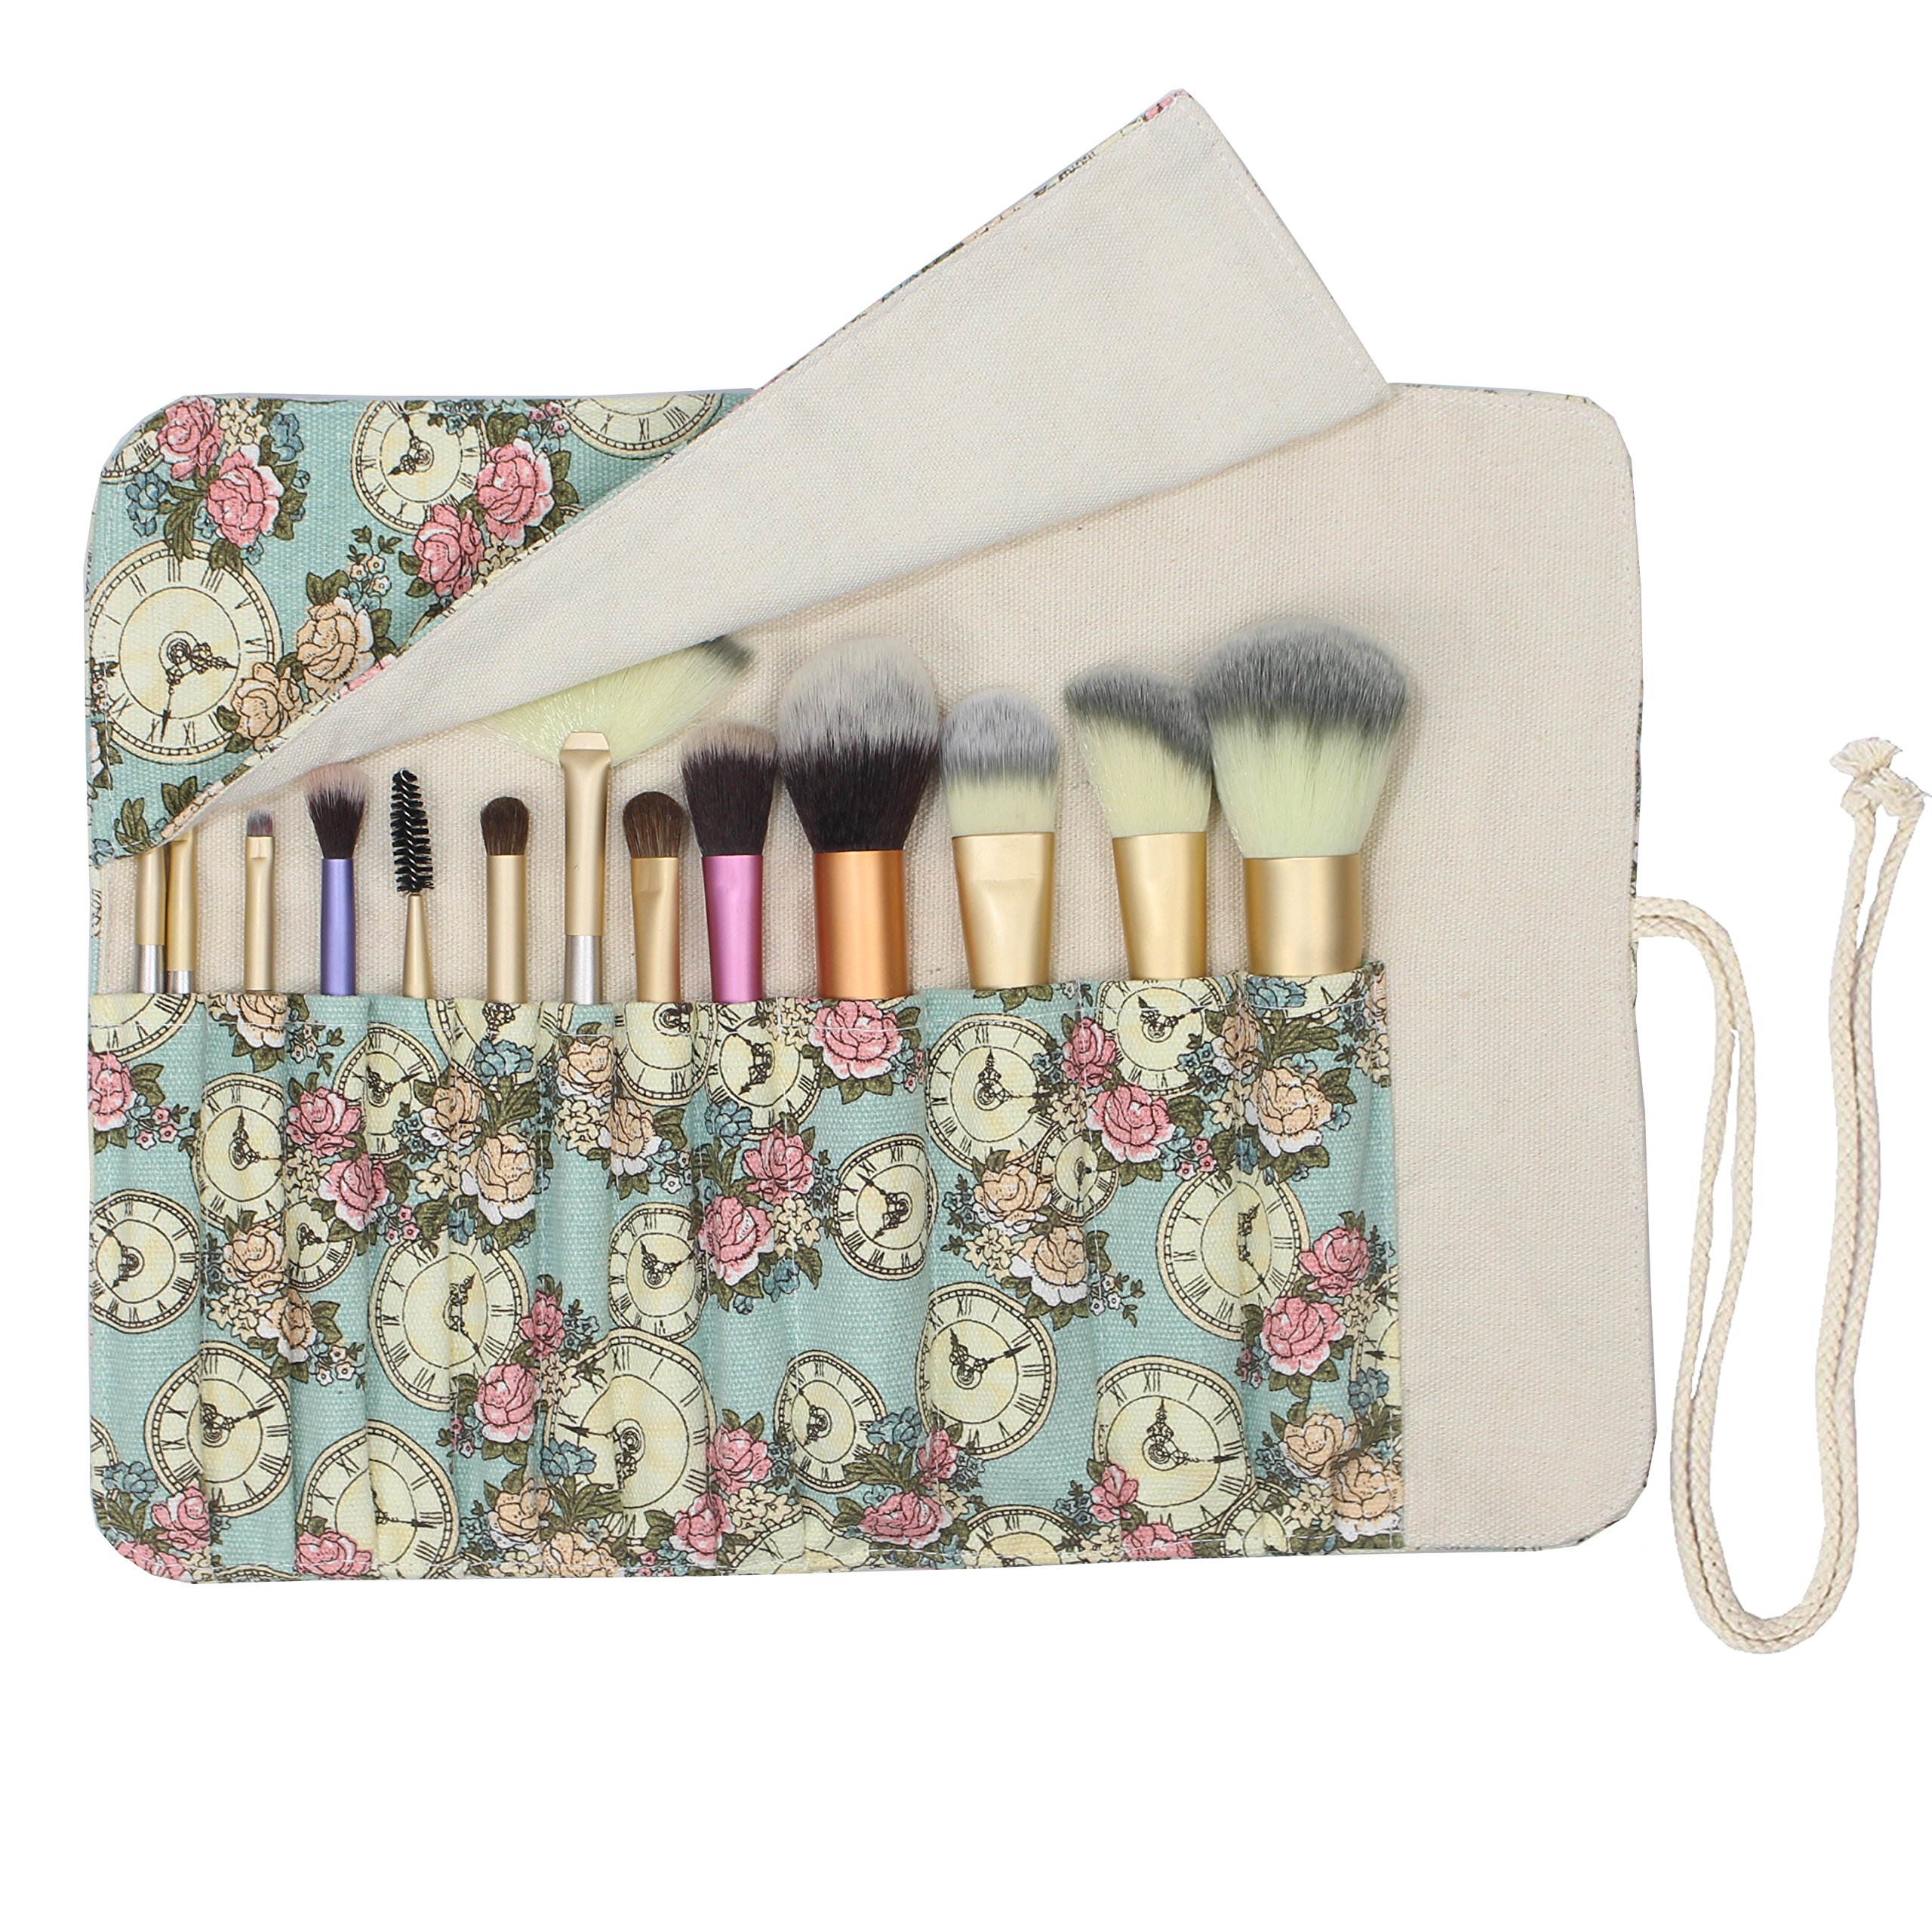 d02d5de6ae97 12 Pockets Makeup Brushes Rolling Case Pouch Holder Cosmetic Bag Organizer  Case with Belt Strap